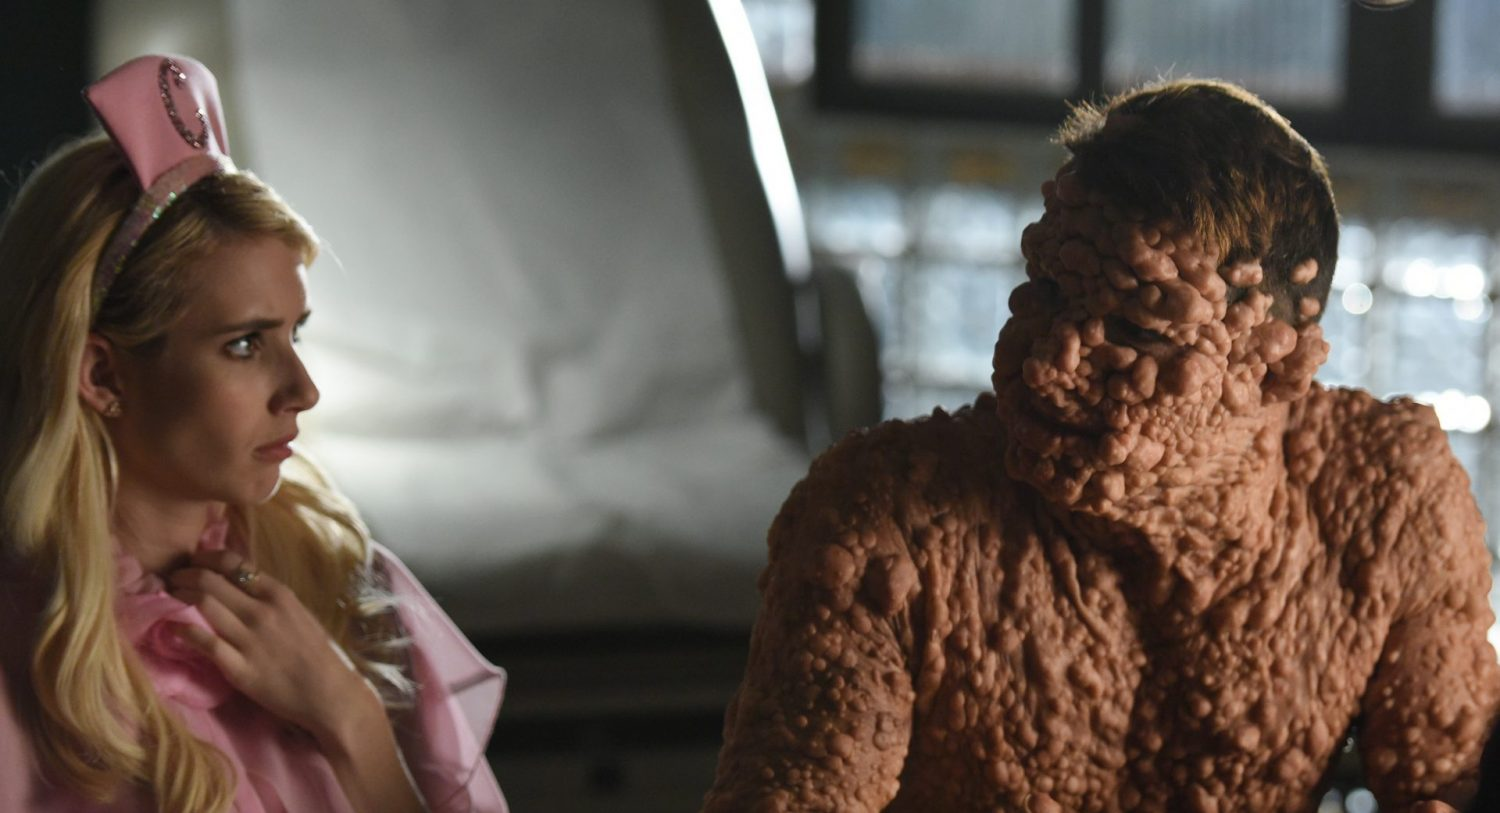 Resultado de imagen de scream queens 2x02 wart and all channel 5